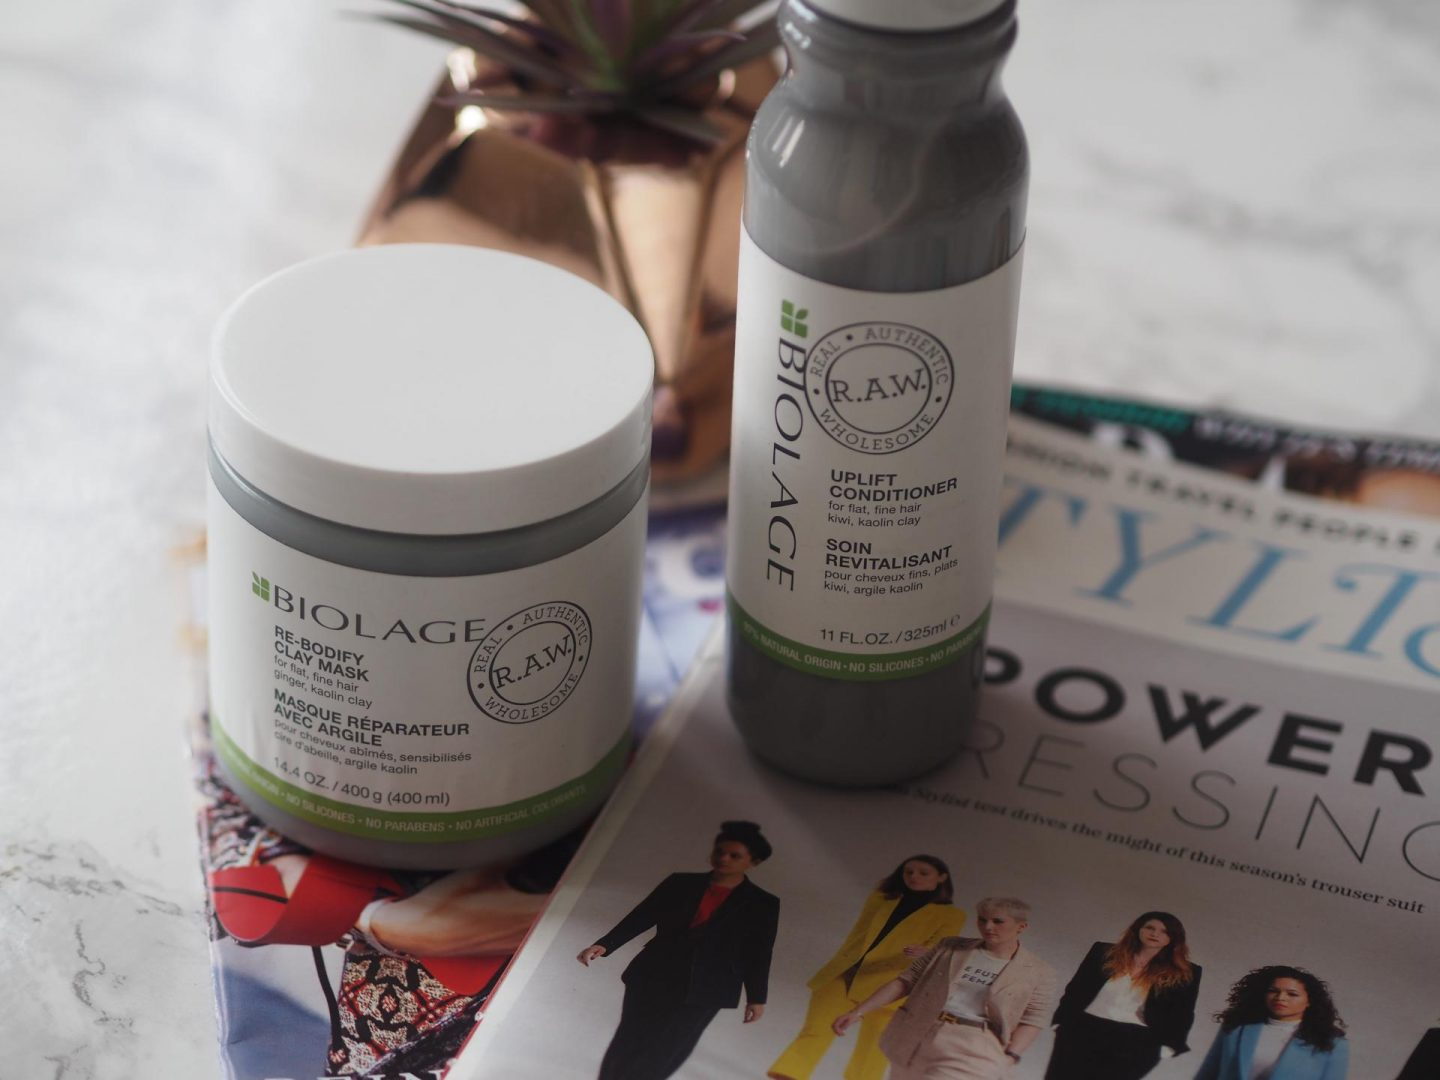 Lookfantastic beauty haul and Biolage Uplift and Rebodify range